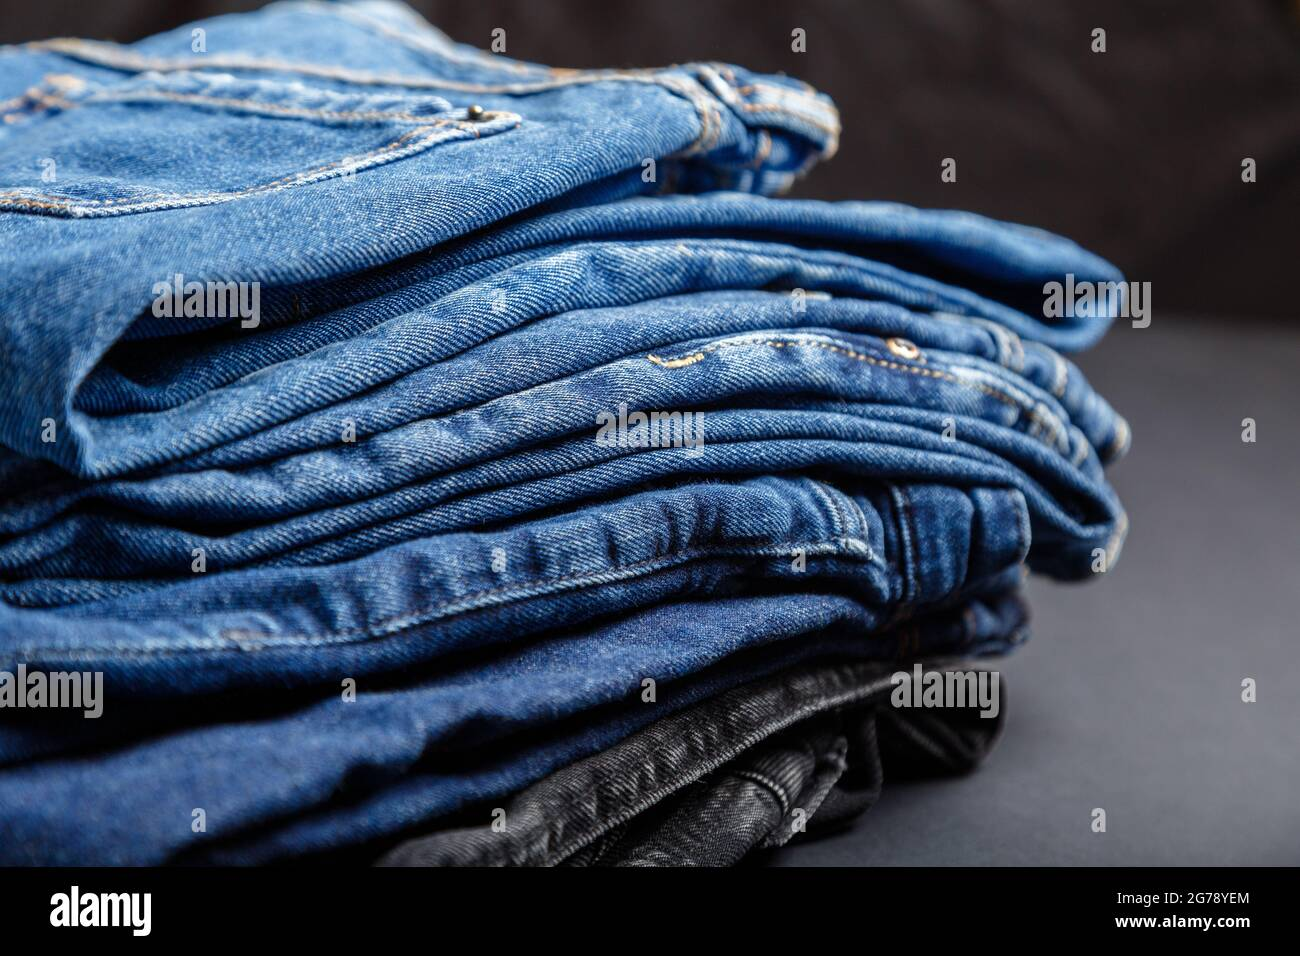 Blue jeans trousers stack textile texture fabric background. Stack of variety blue color jeans, denim jean textiles on black background. Stock Photo